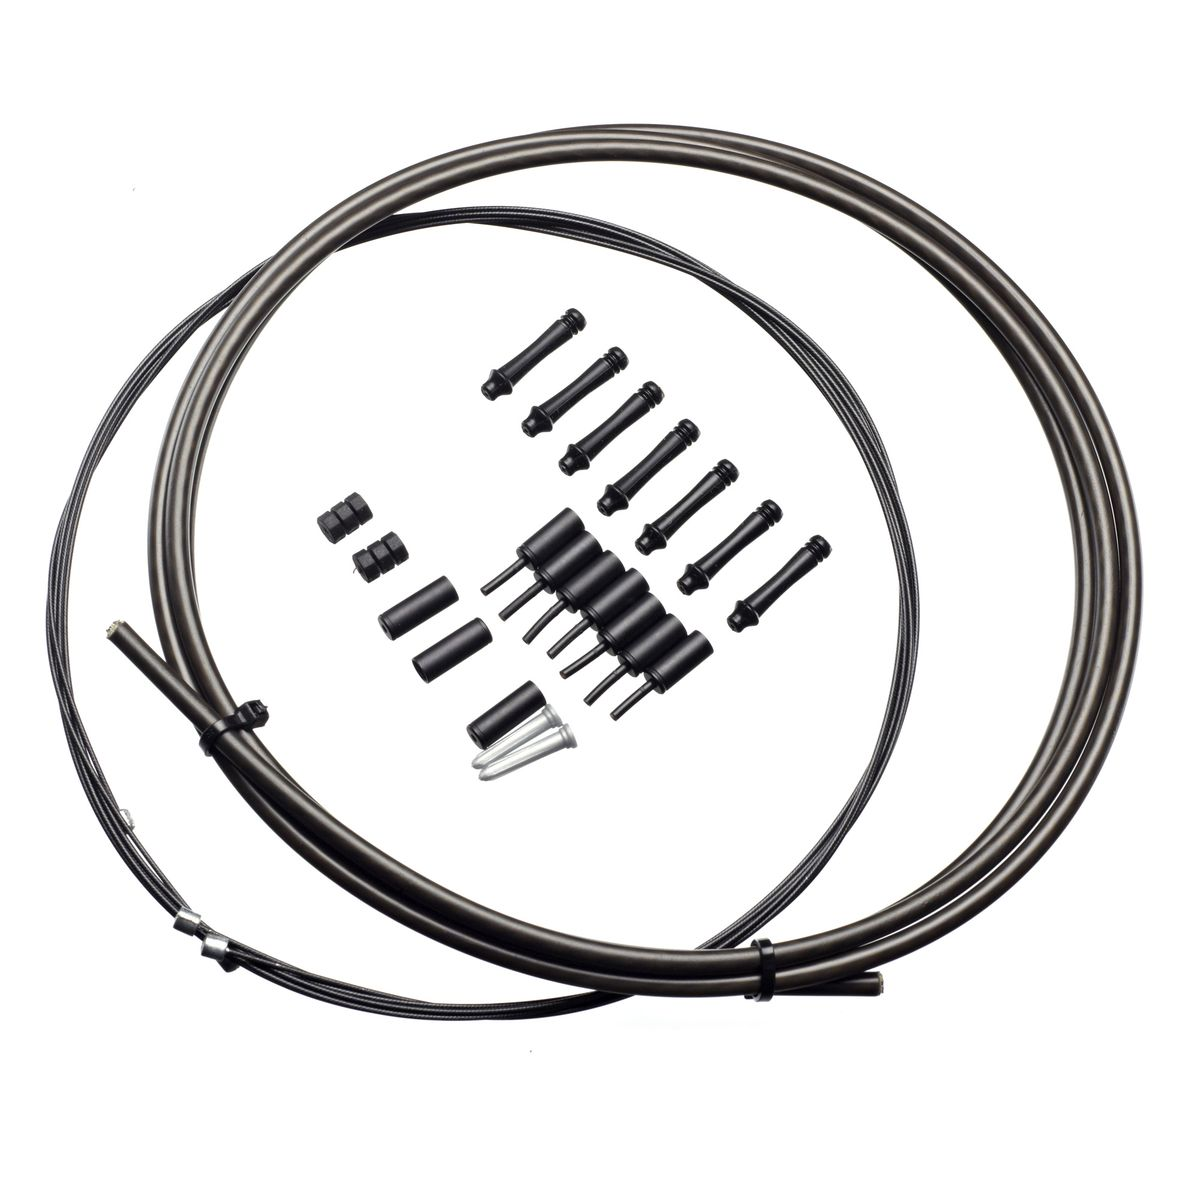 easycable KS shift cable set